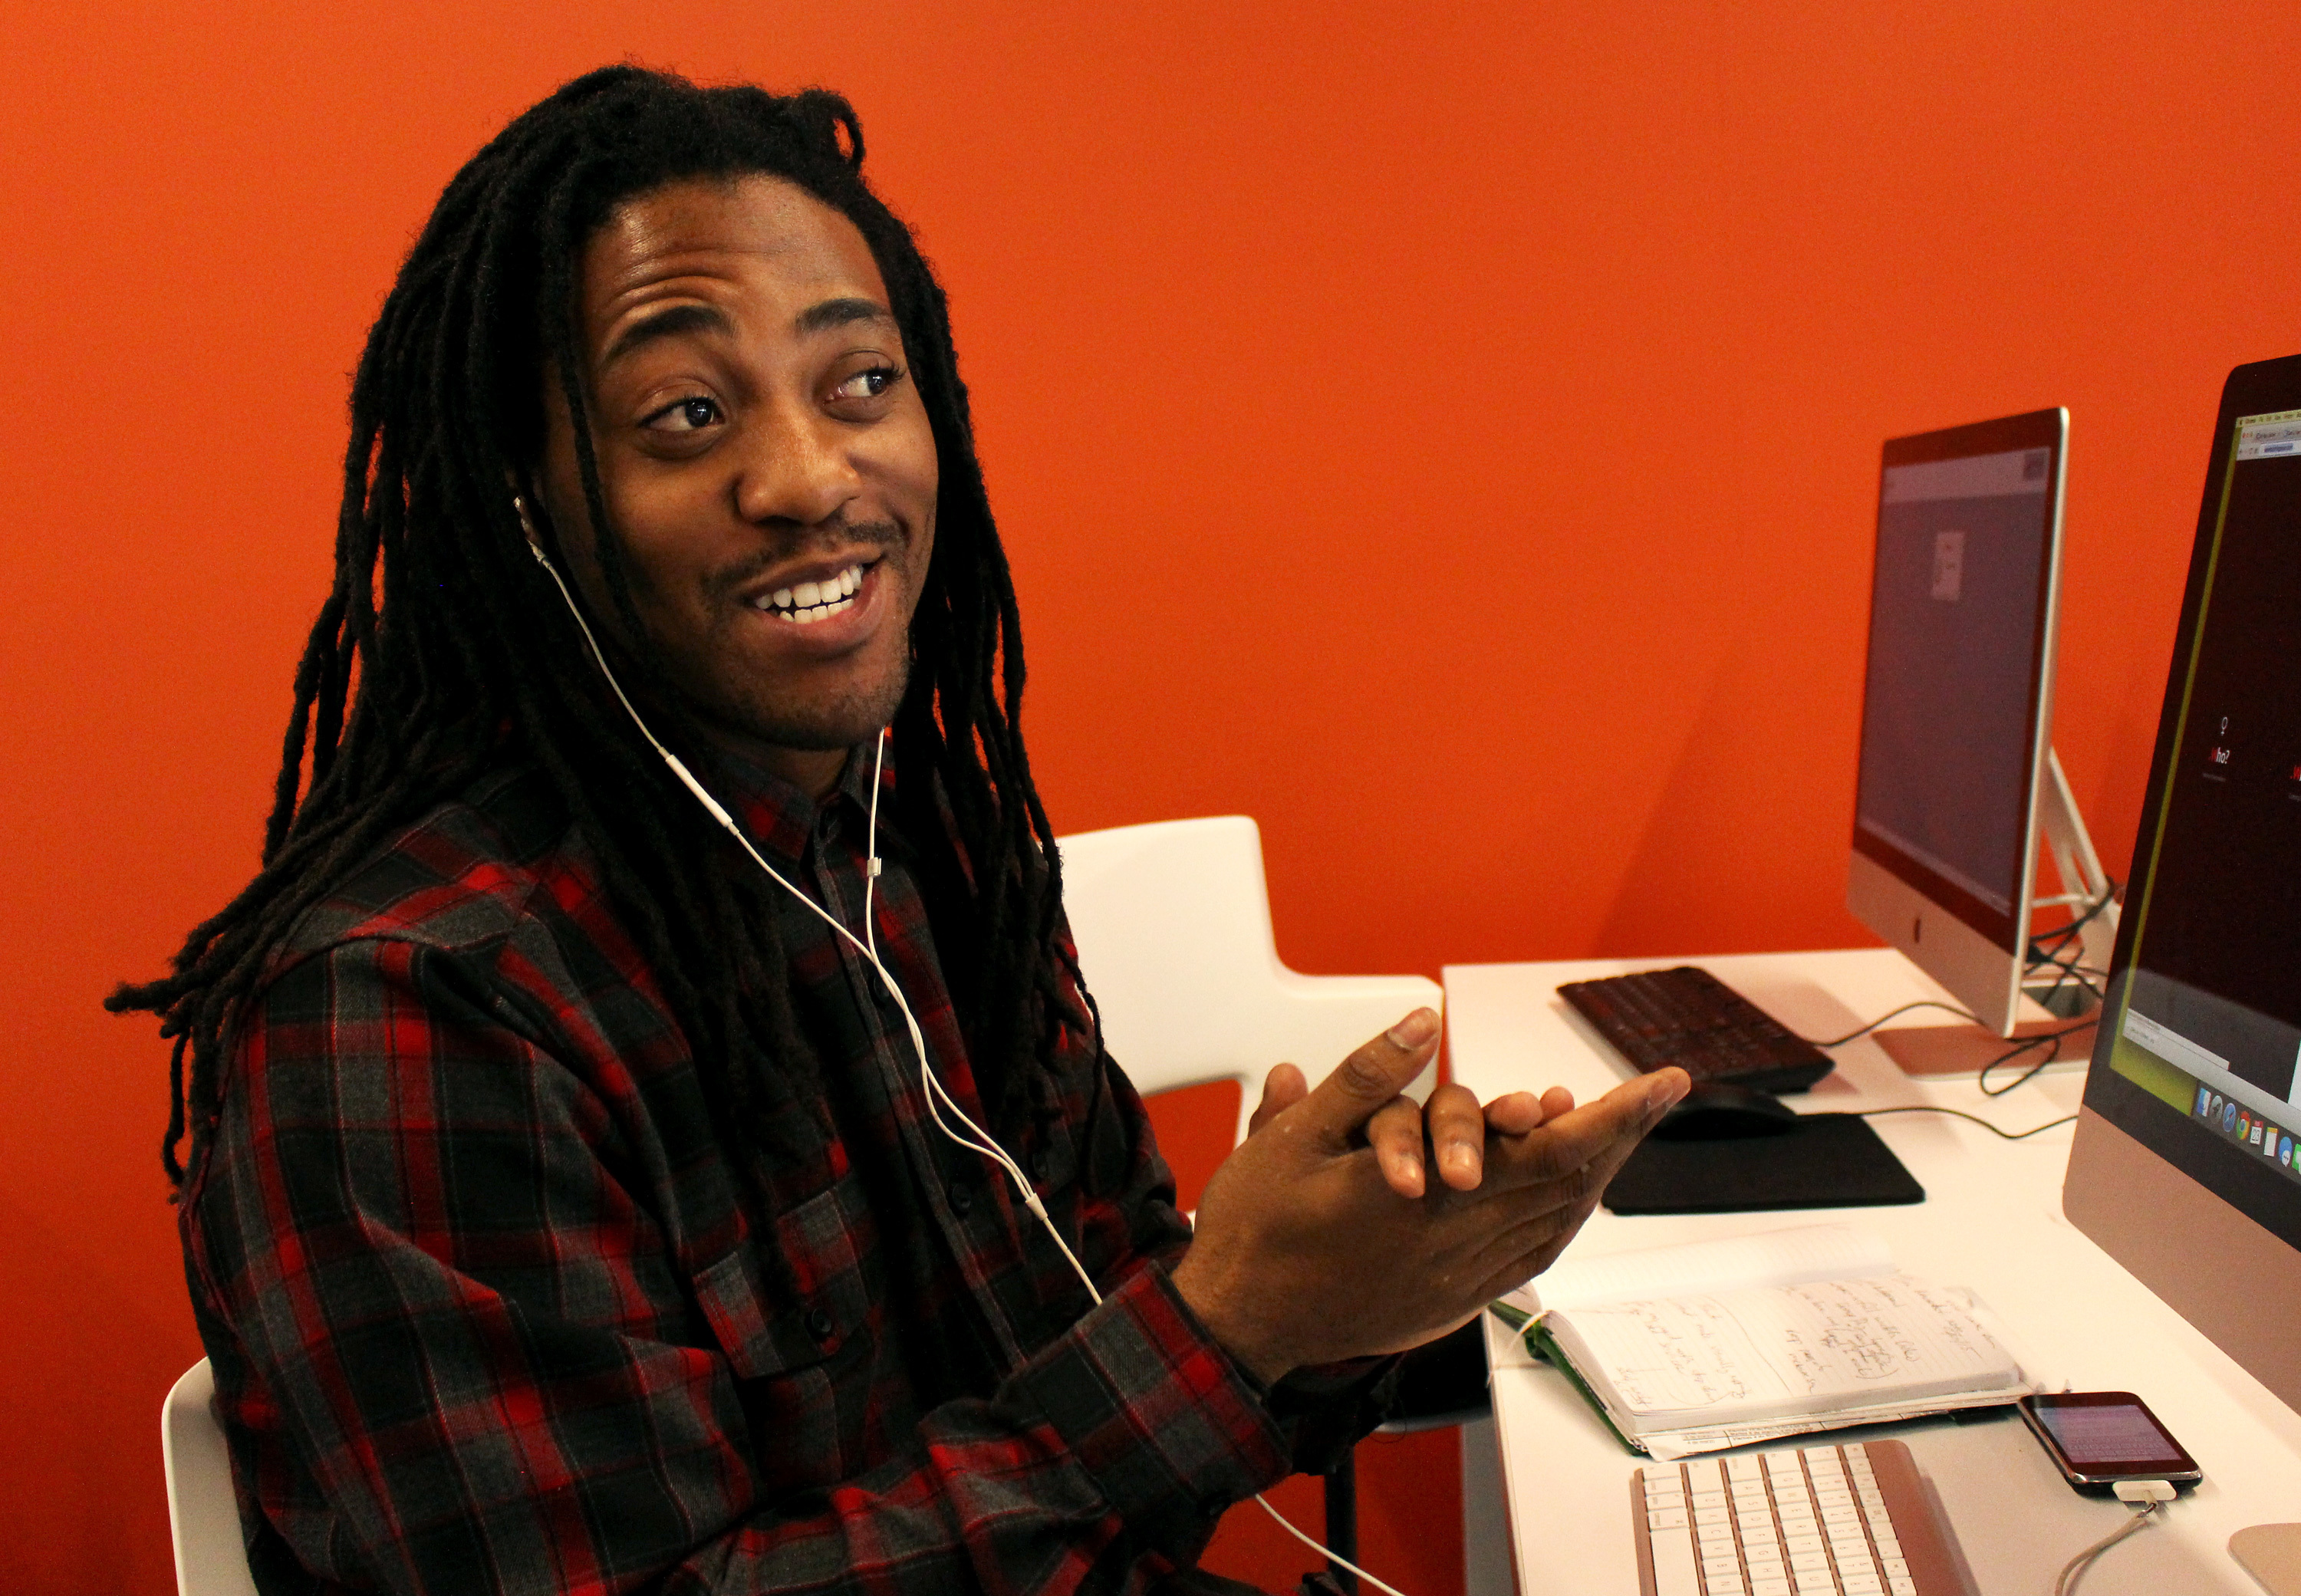 In Omaha, A Library With No Books Brings Technology To All